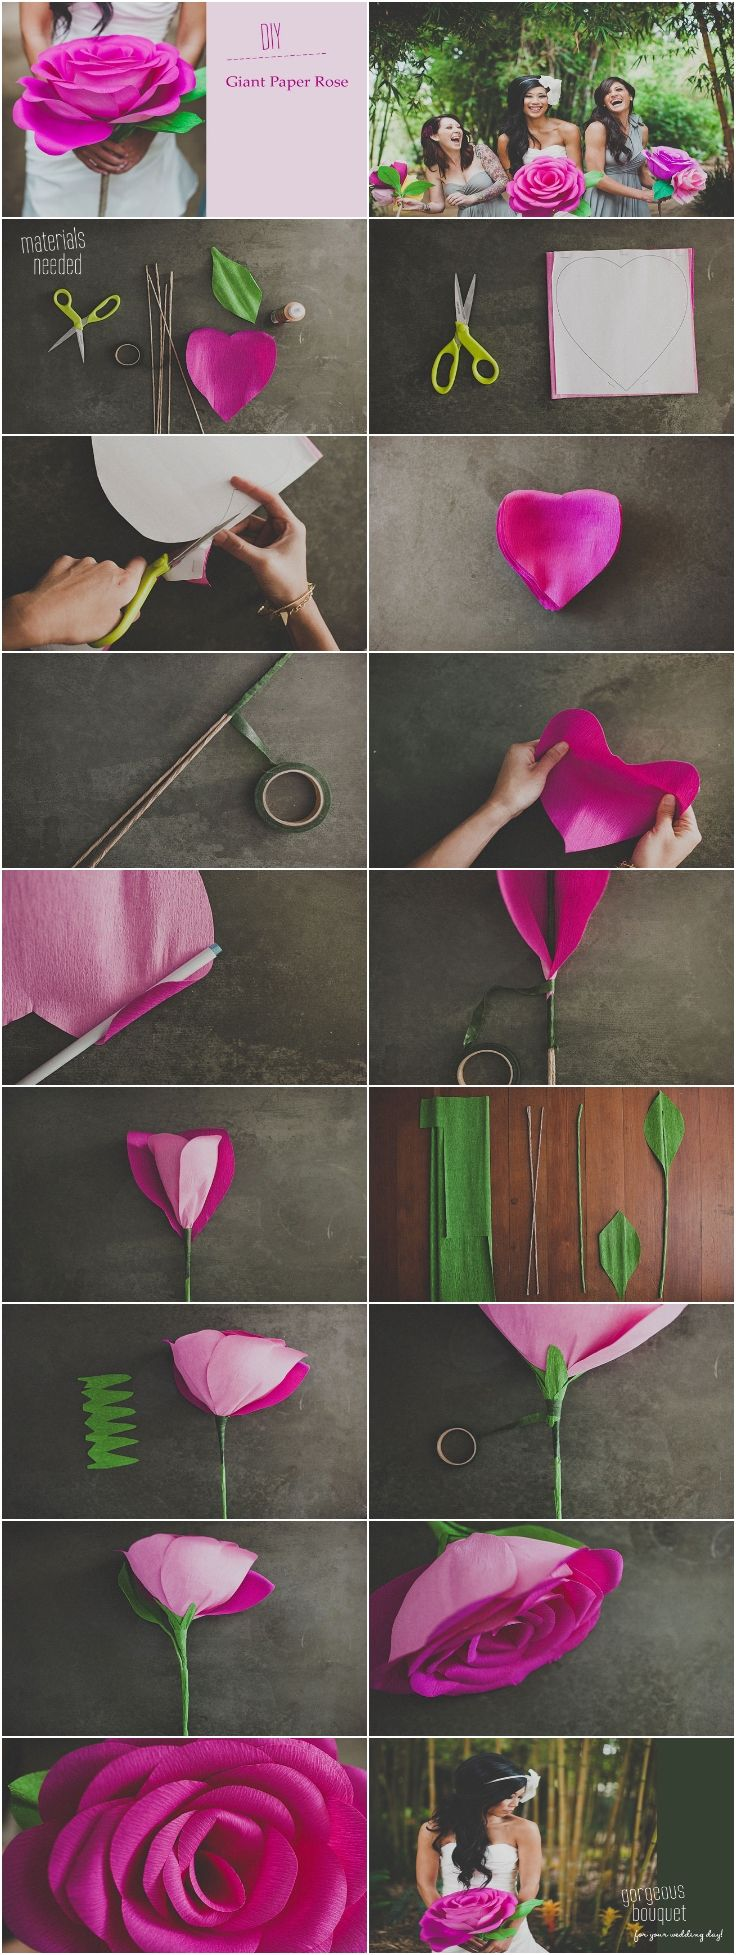 DIY Giant Paper Rose Flower  flores de papel  Pinterest  Flower